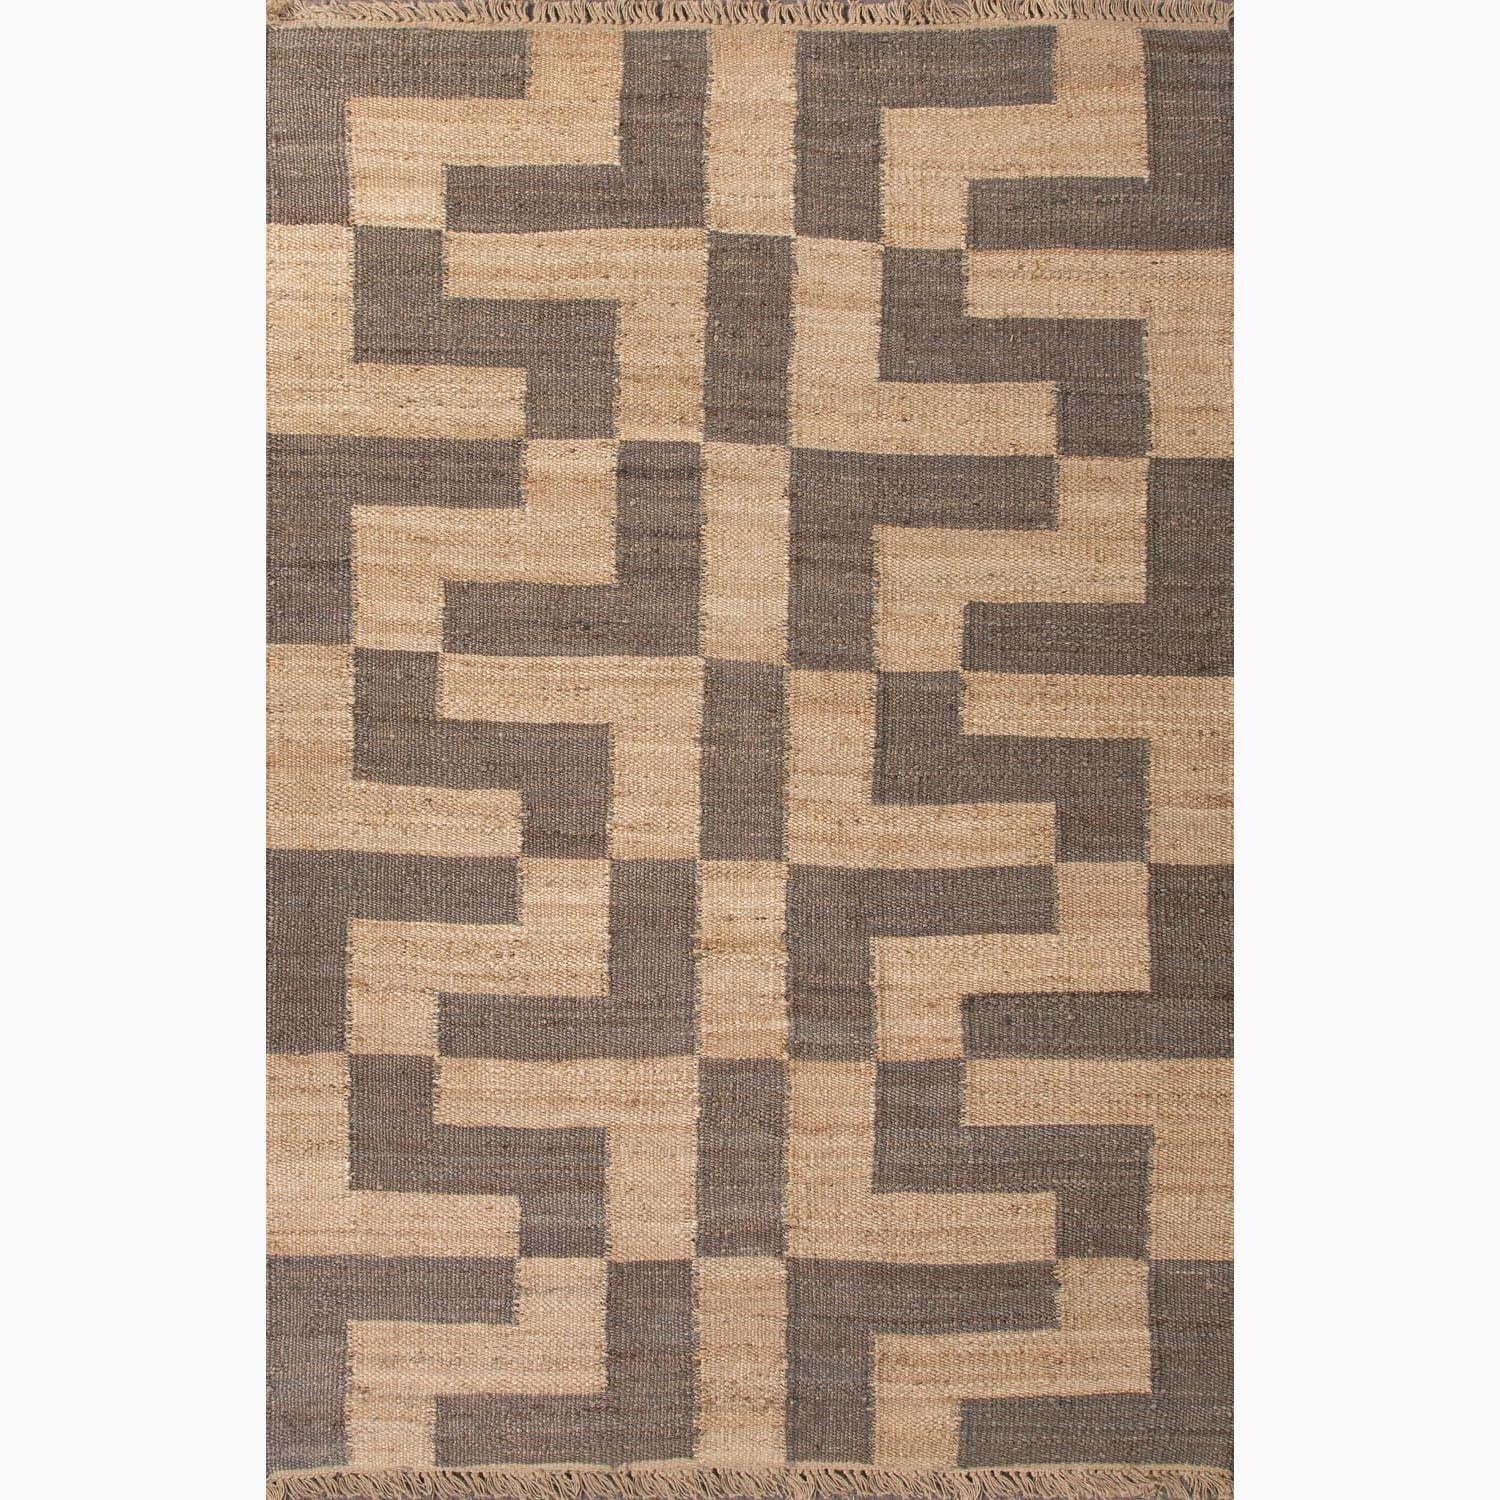 Handmade Taupe/ Gray Hemp Eco-friendly Rug (4 x 6)